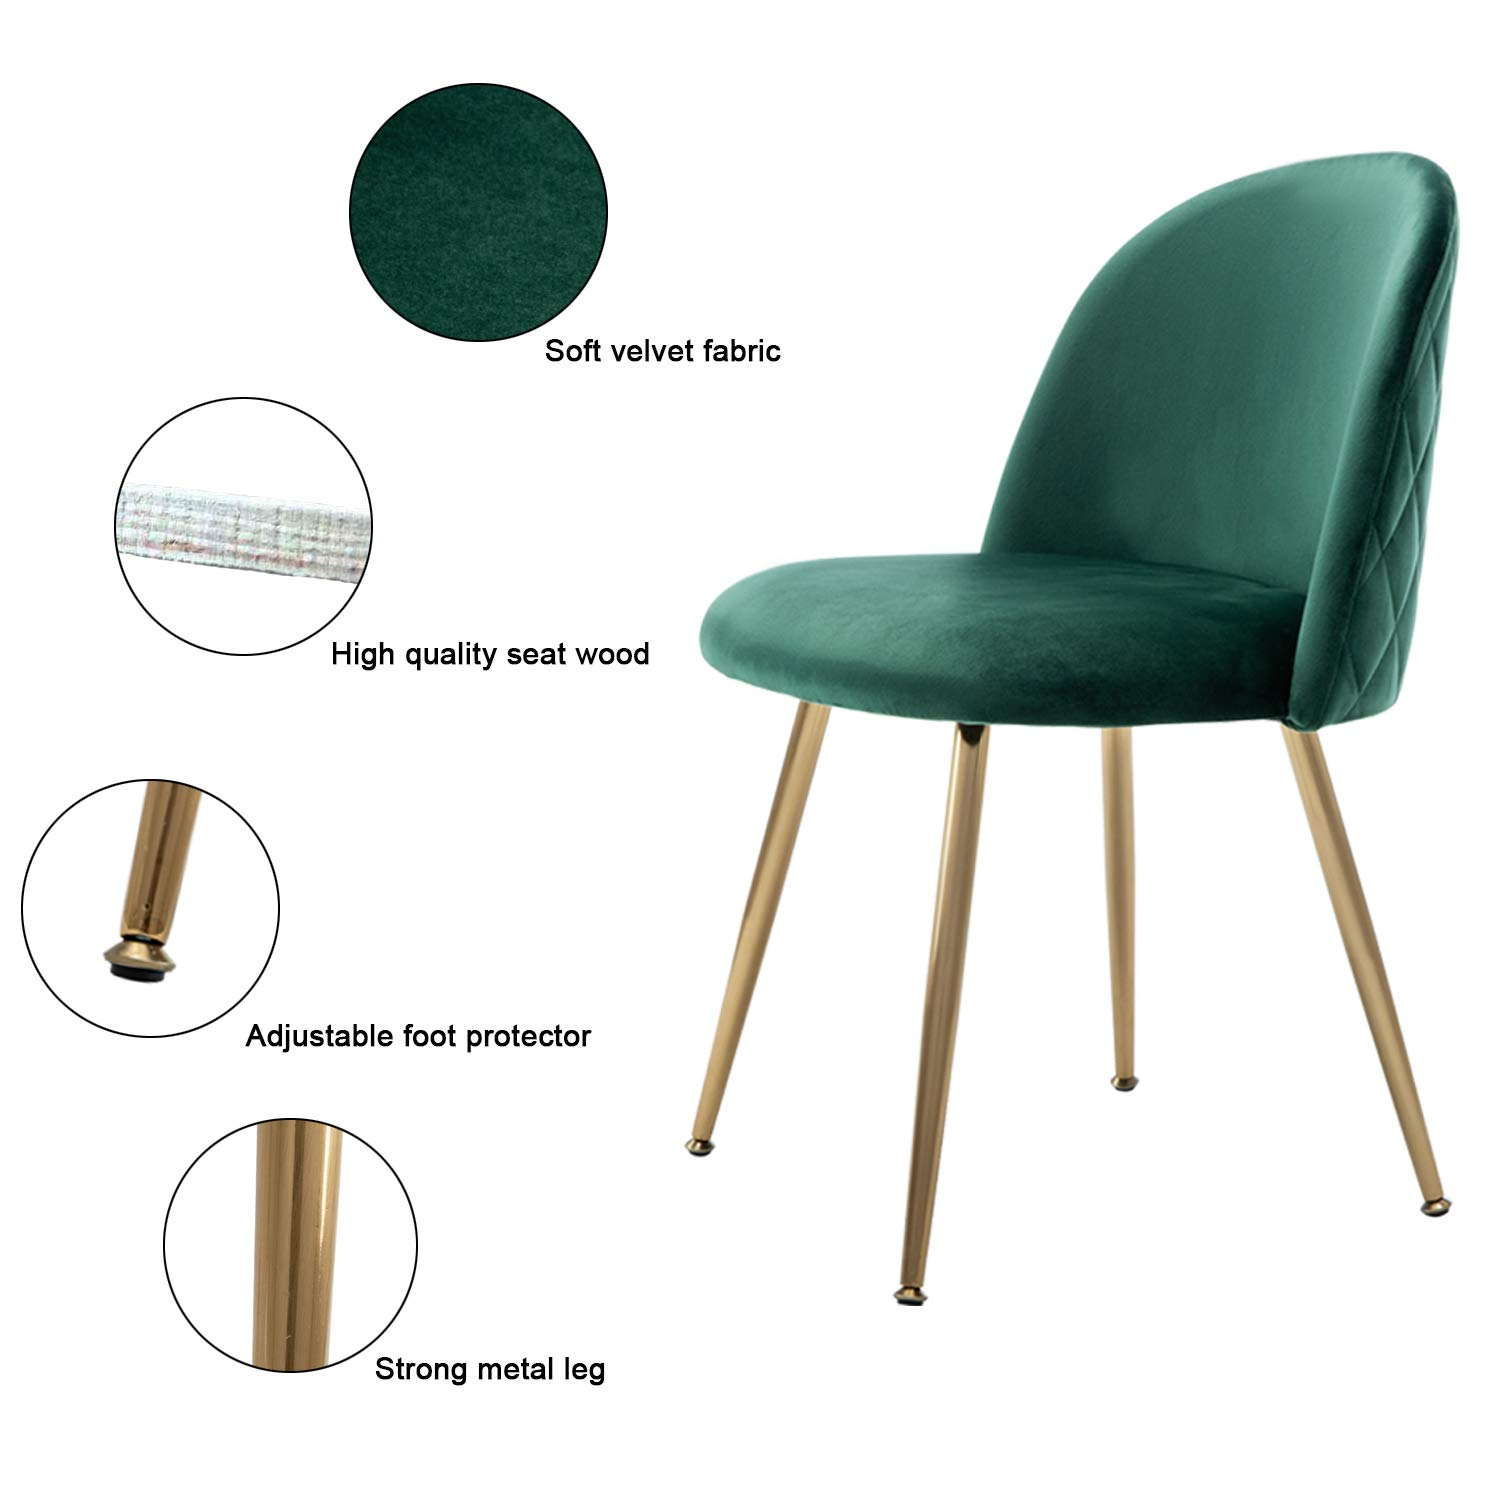 Modern Velvet Dining Chairs, Upholstered Living Room Leisure Chairs, Gold Accent Chairs for Dining Room/Kitchen/Vanity, Set of 2 - Green